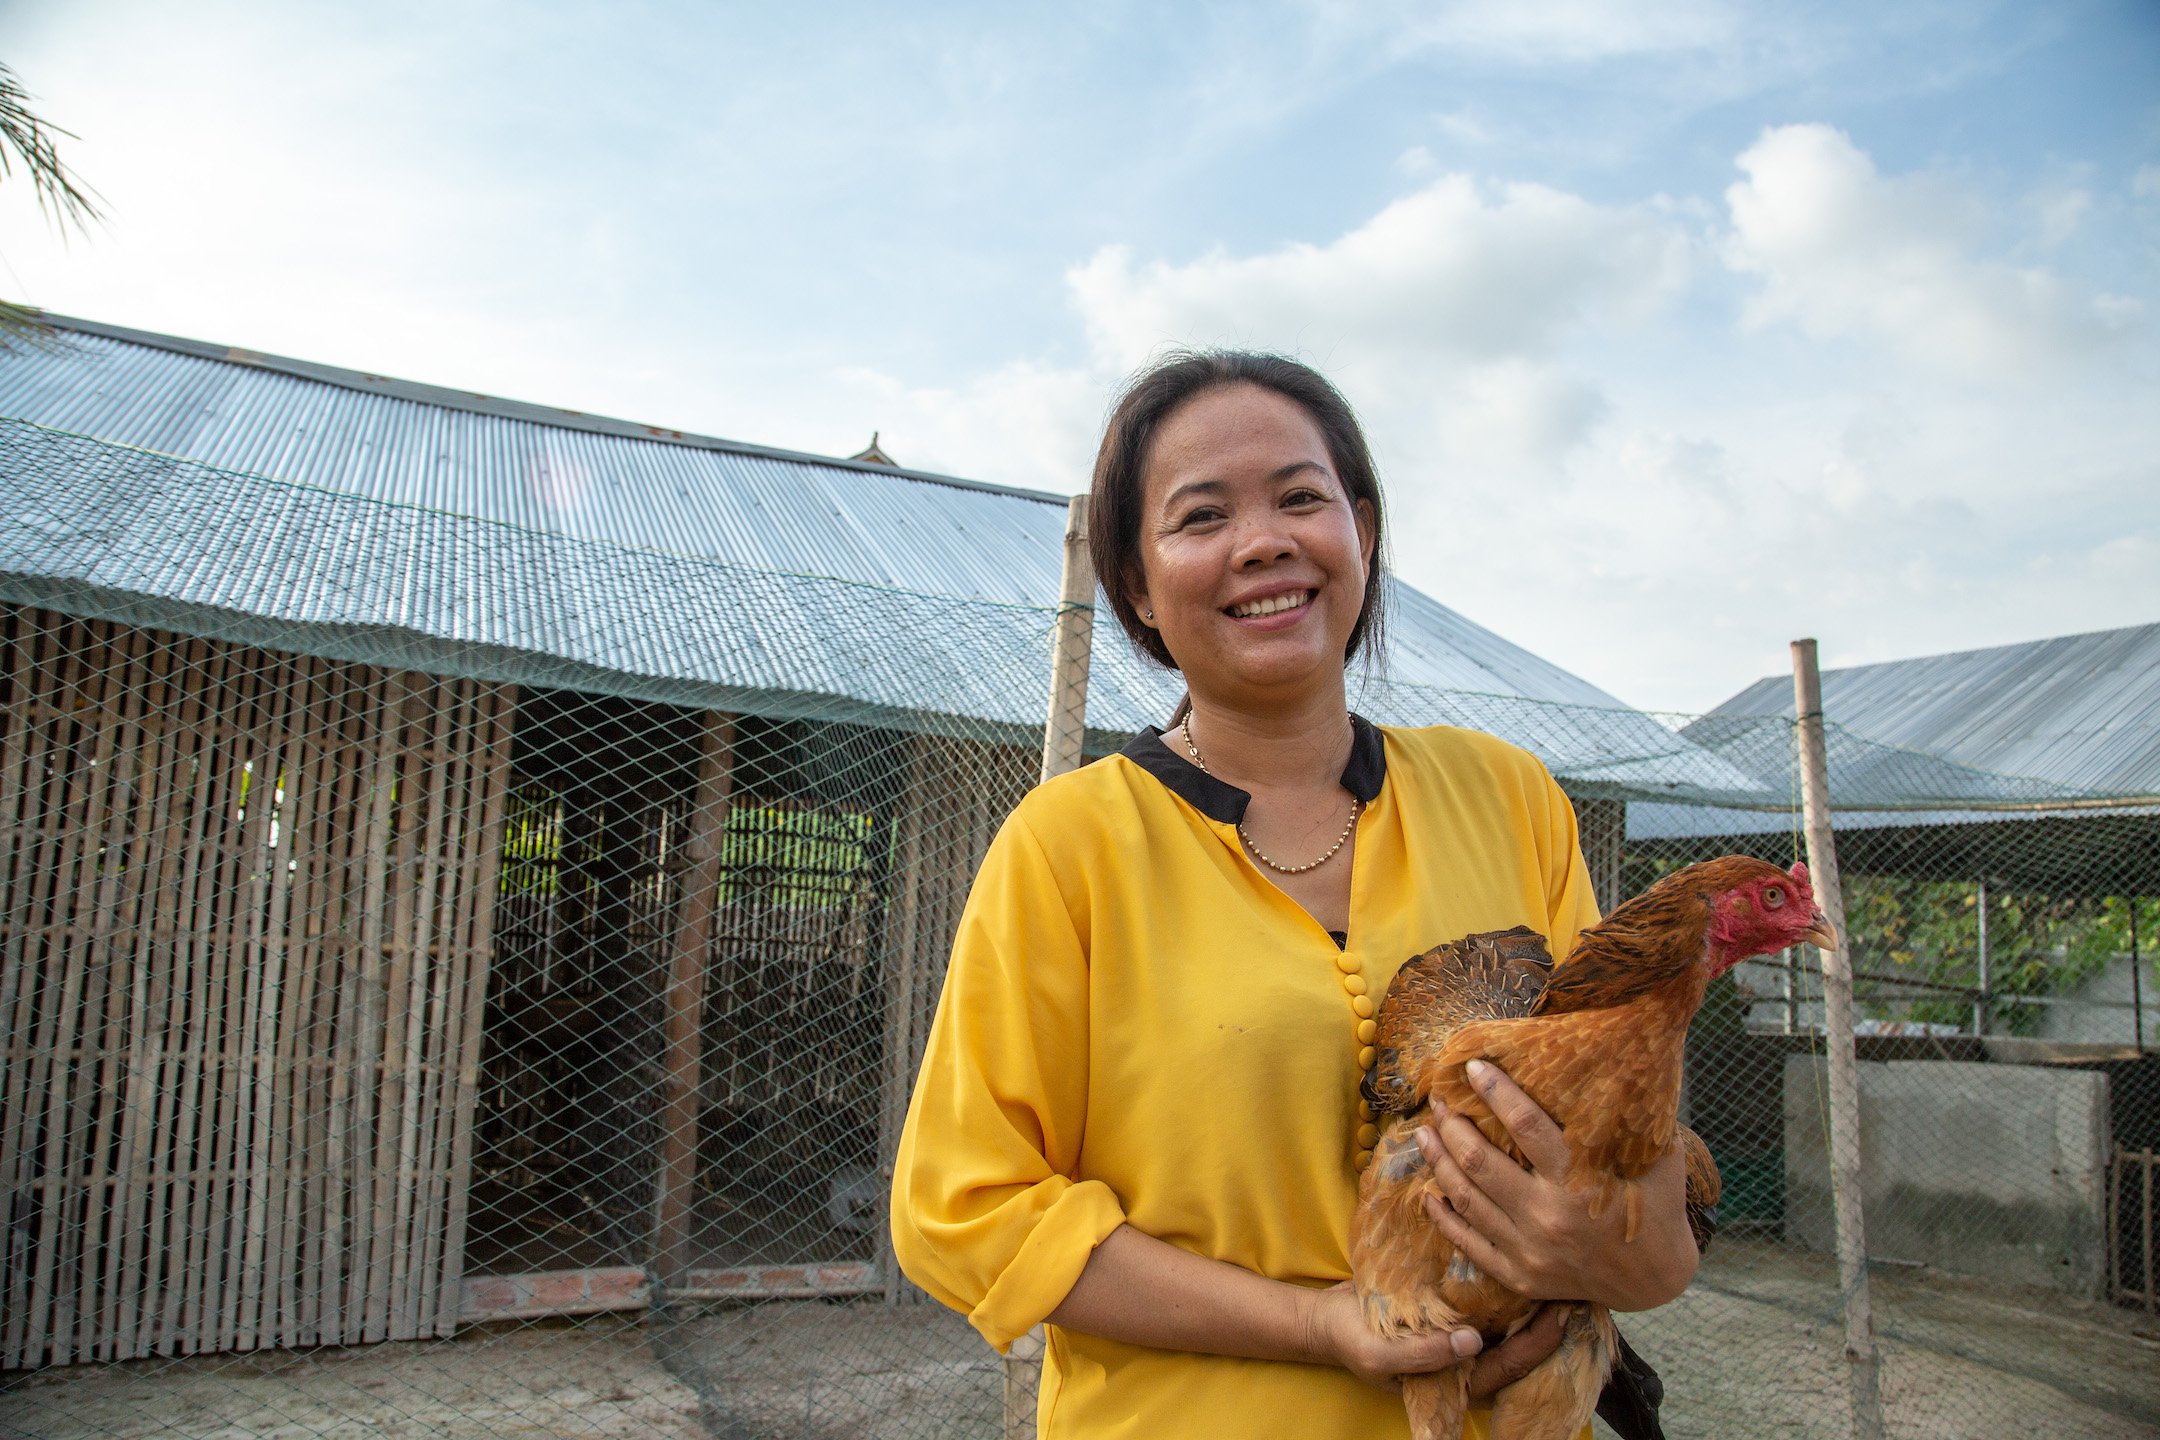 Hoy Lin smiles while she holds a chicken.